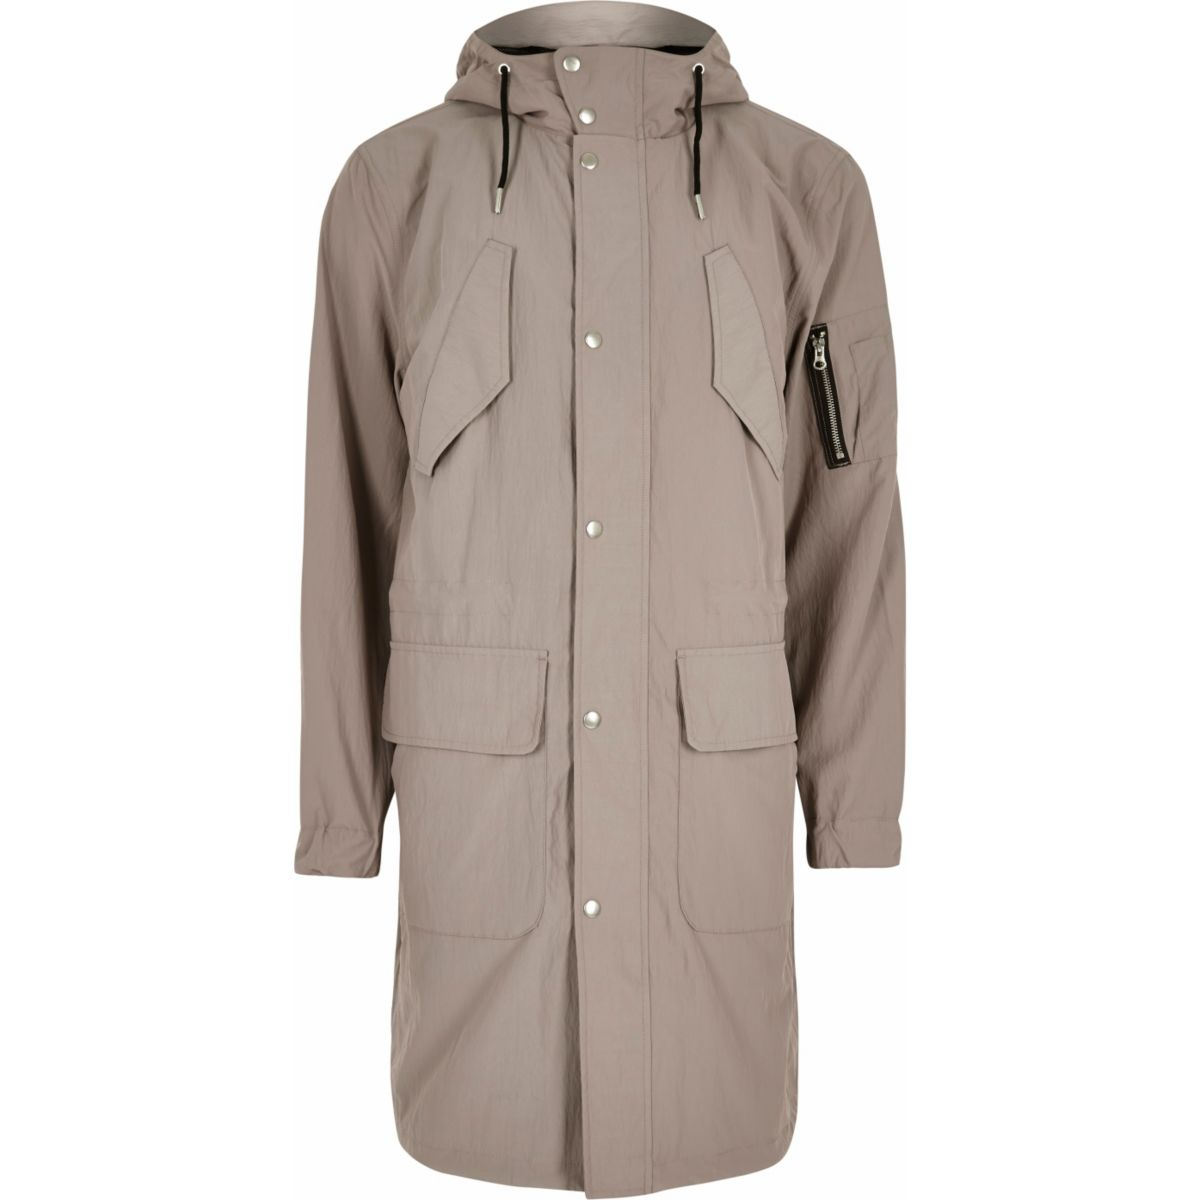 Stone pocket parka coat